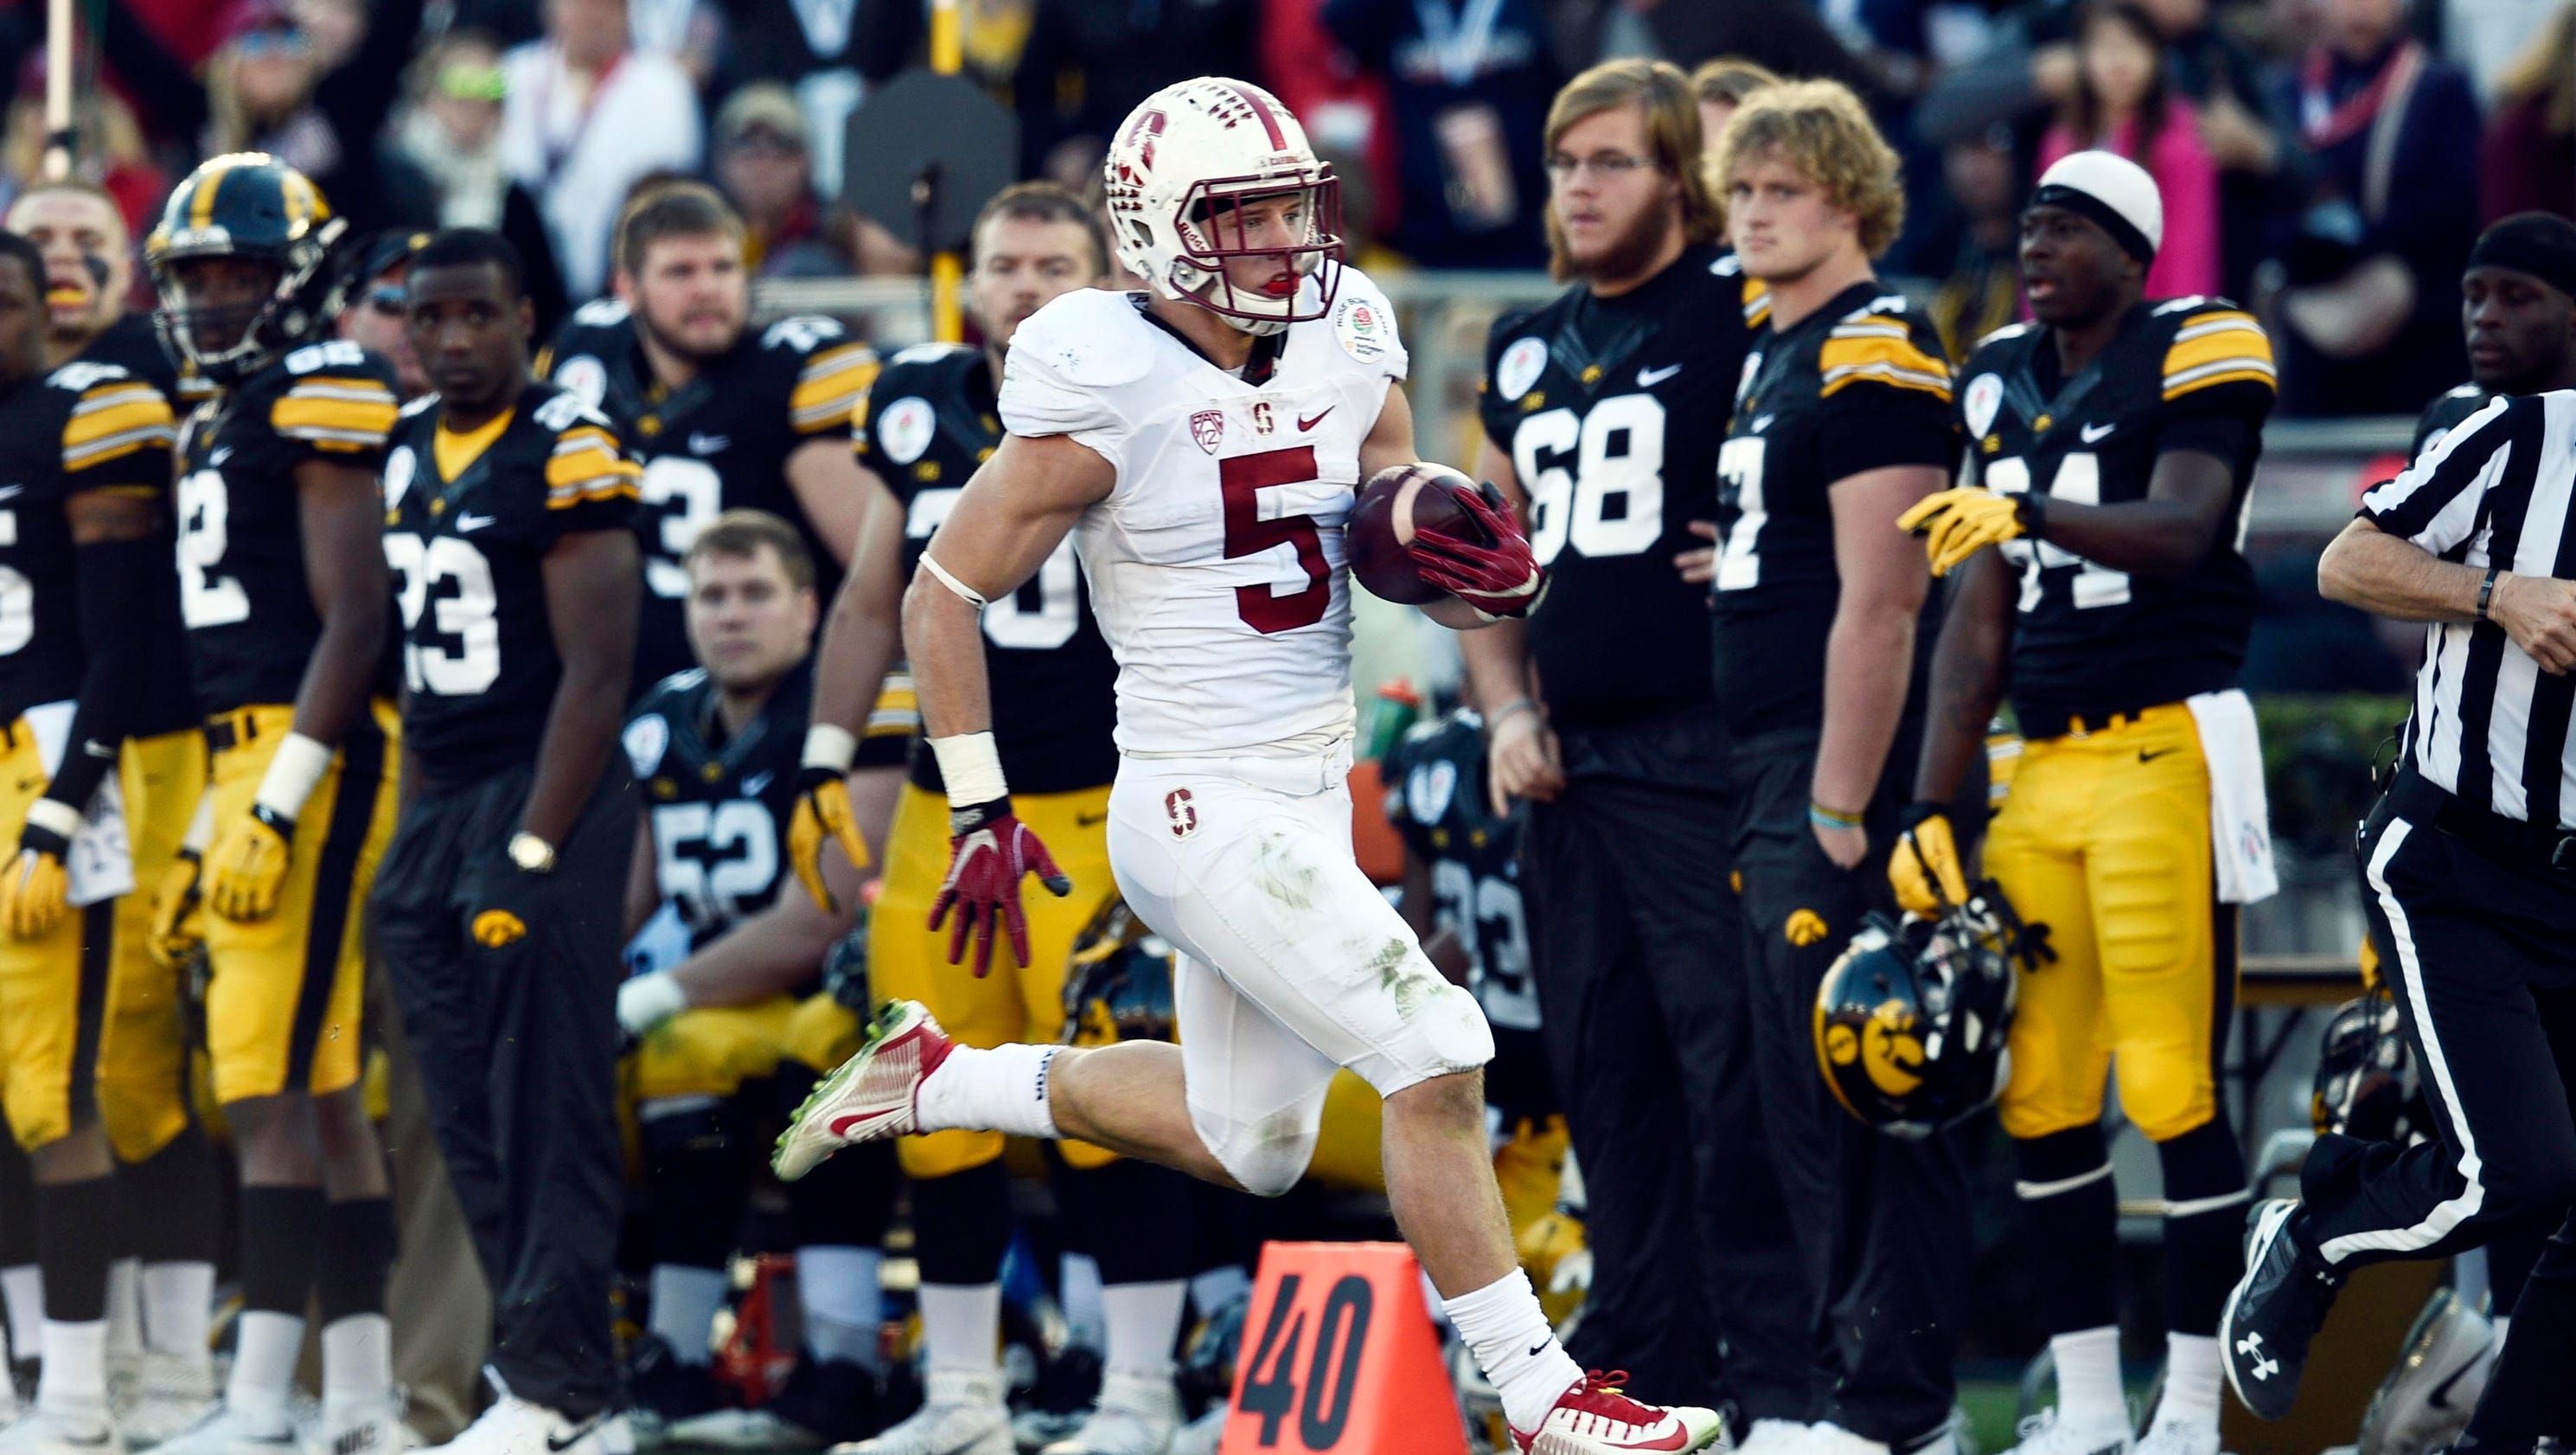 ncaa website stanford college football score